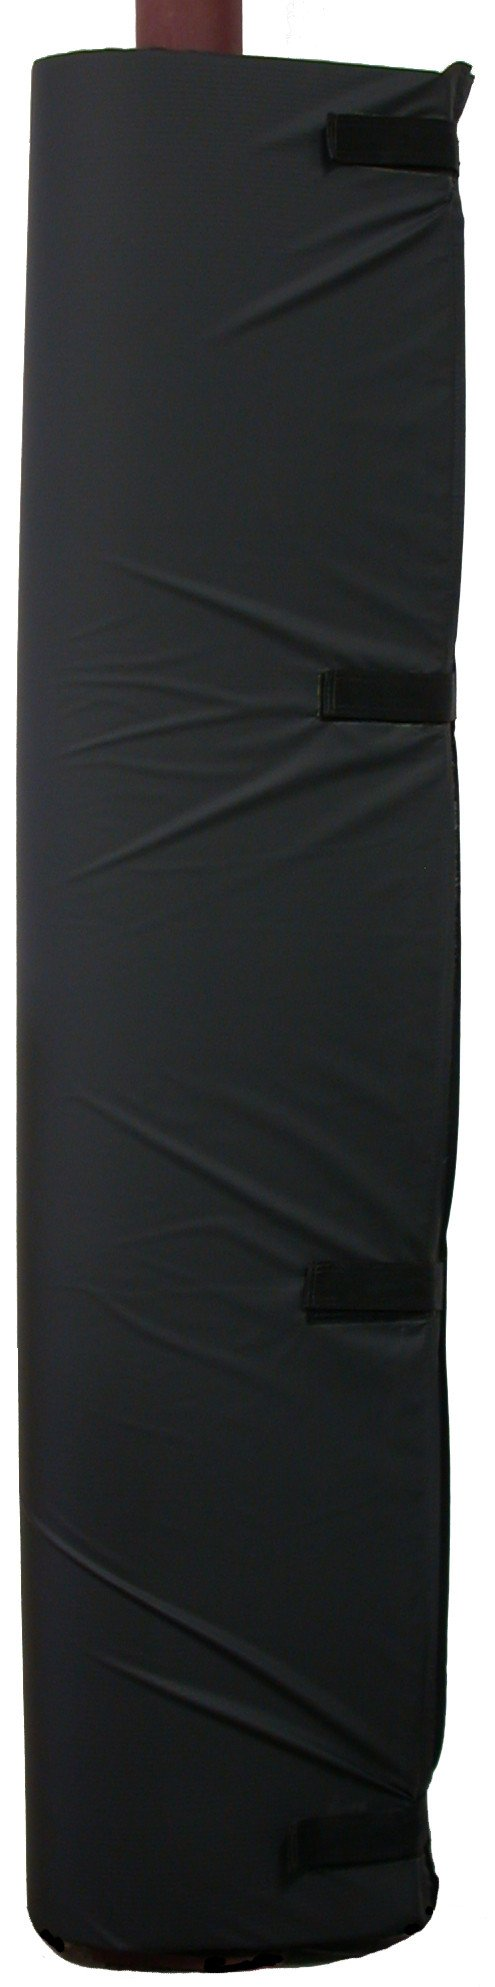 Outdoor Volleyball Protective Post Pole Pad PAD